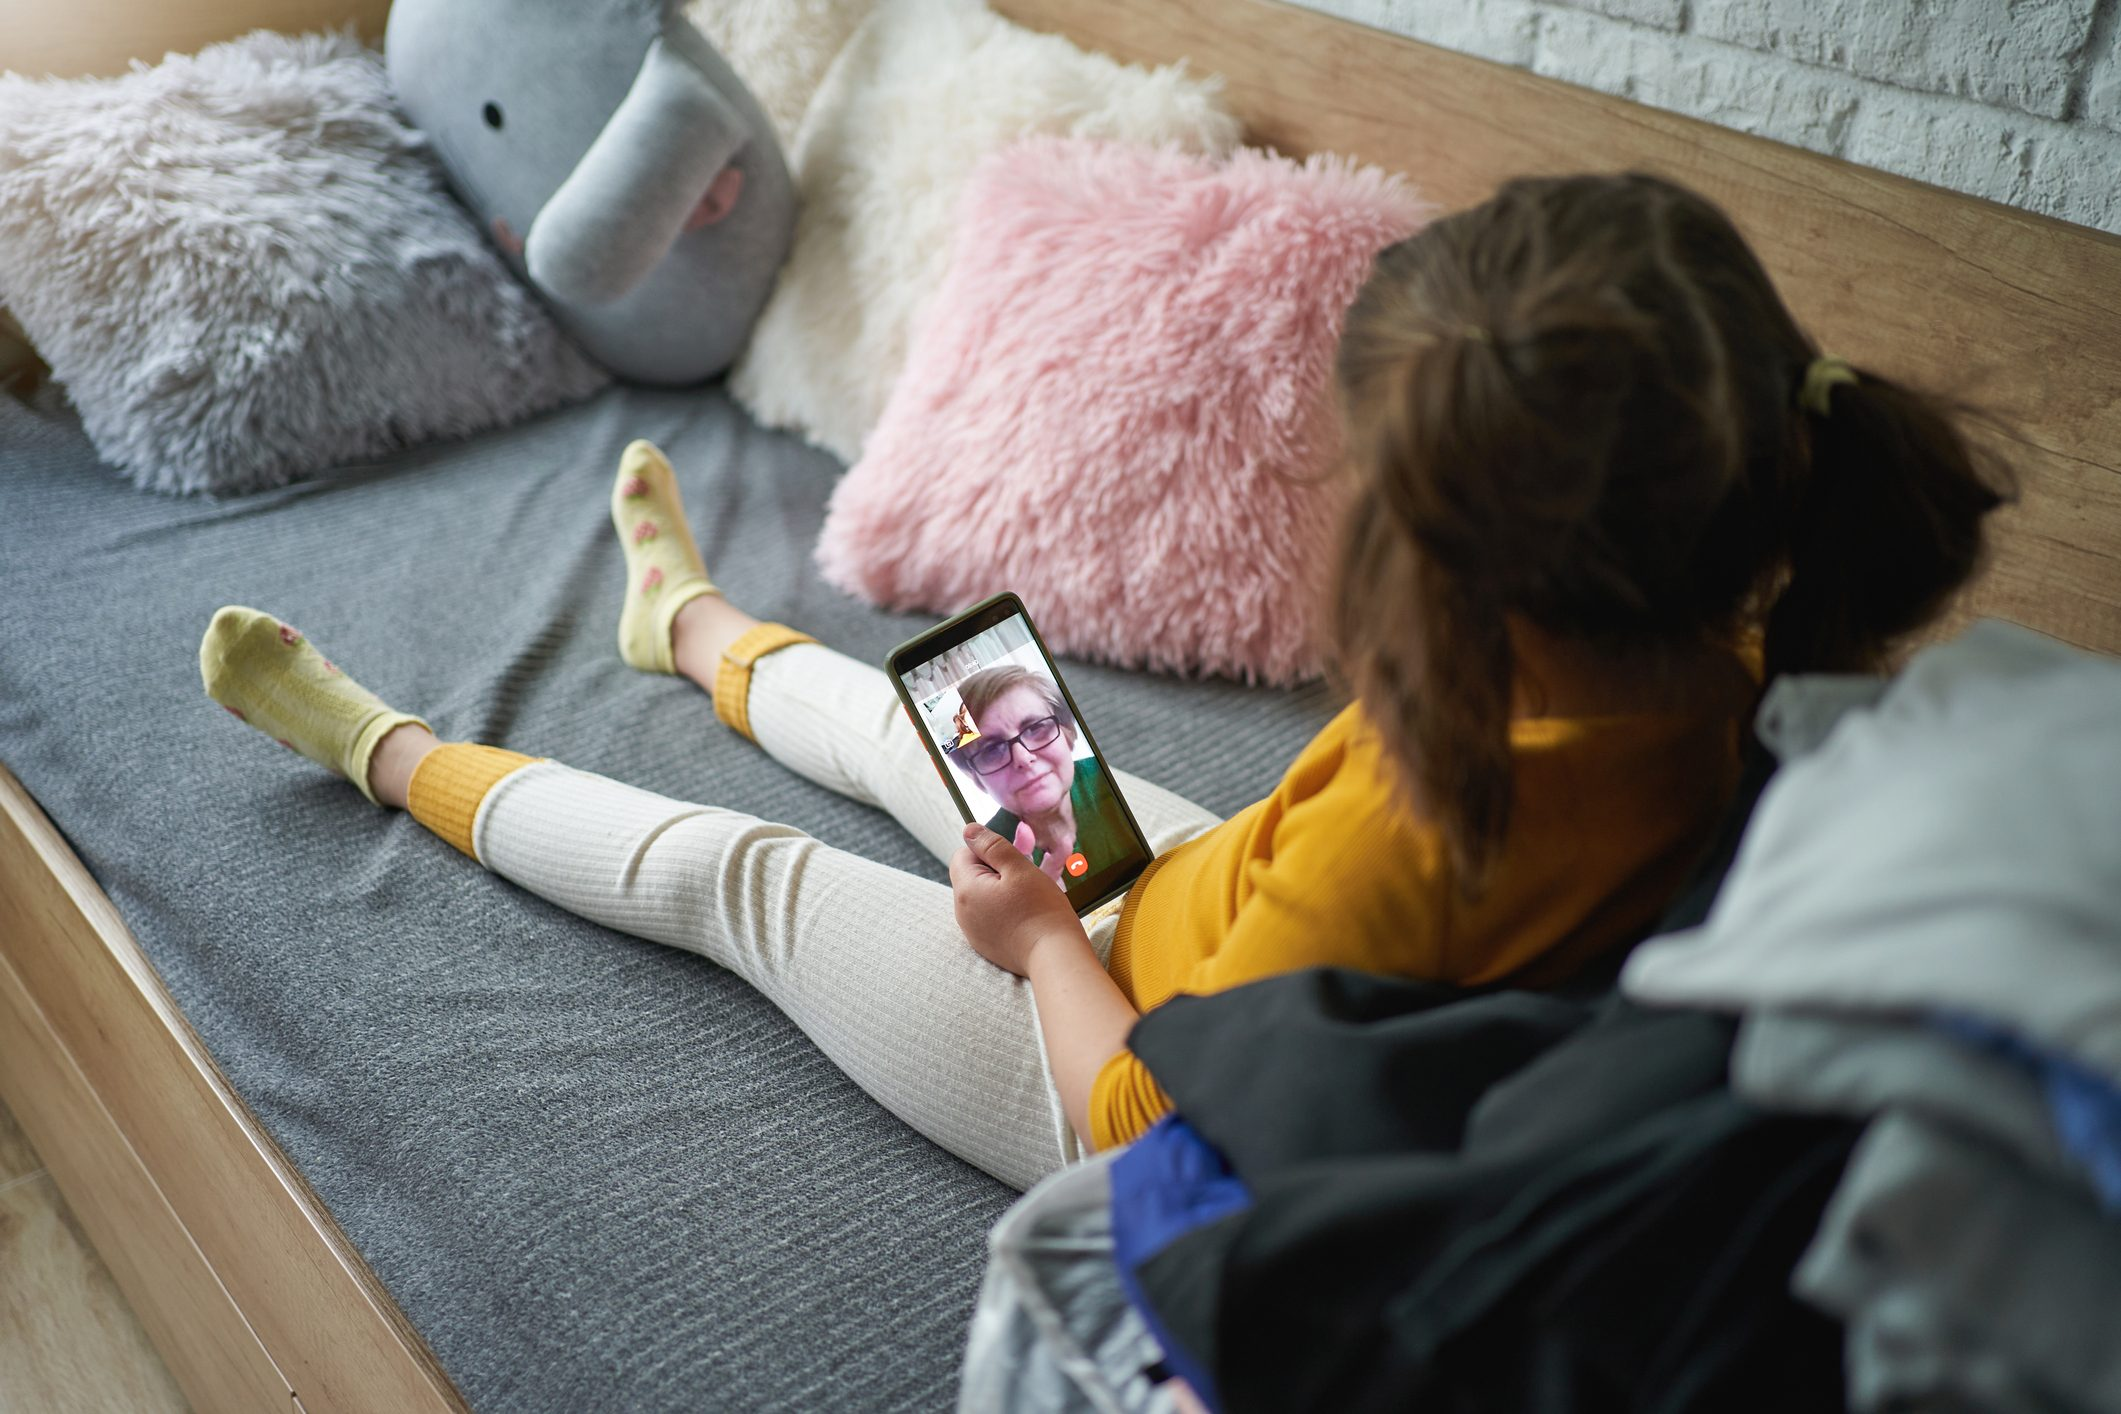 Technology can help us feel less lonely